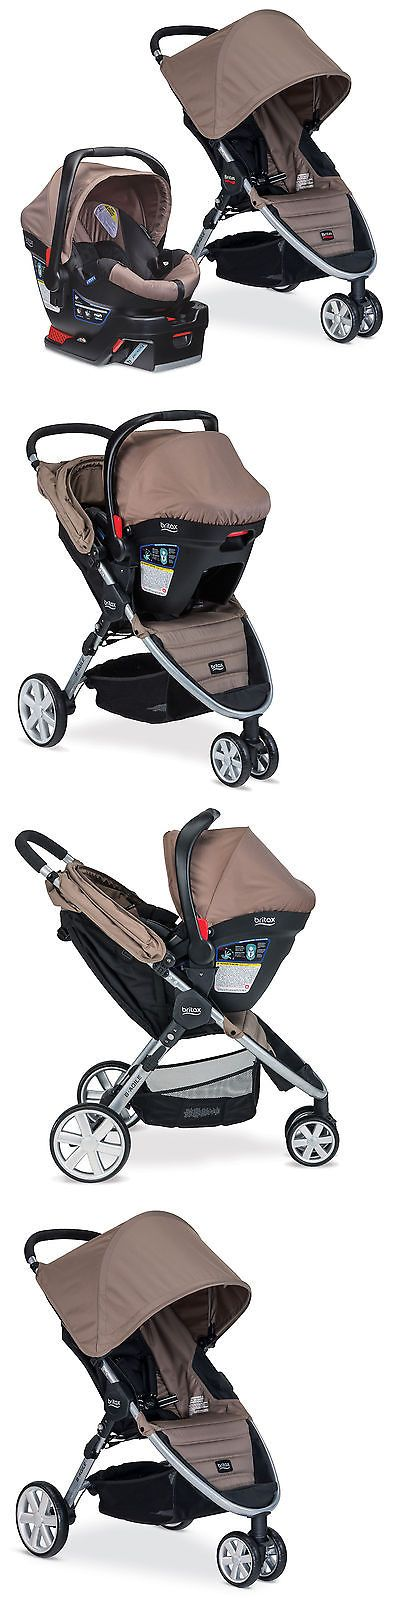 baby kid stuff: Britax 2015 B-Agile Stroller And B-Safe 35 Infant Car Seat Travel System Sandstone BUY IT NOW ONLY: $329.99